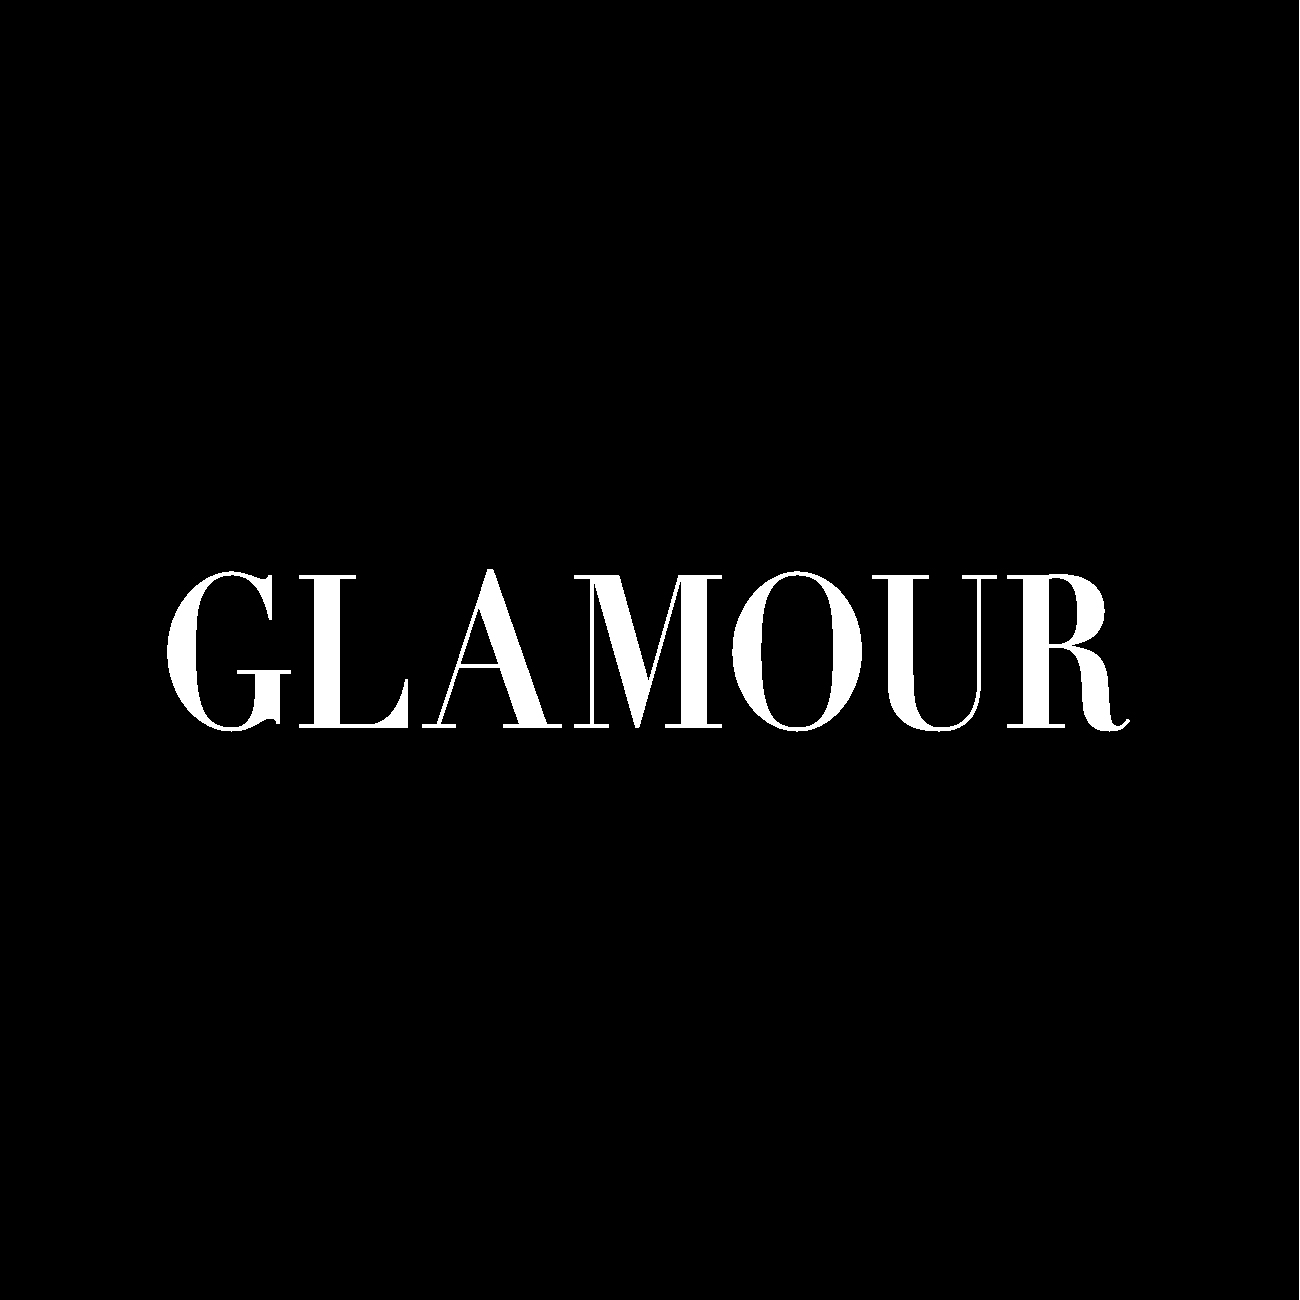 Glamour Catagory